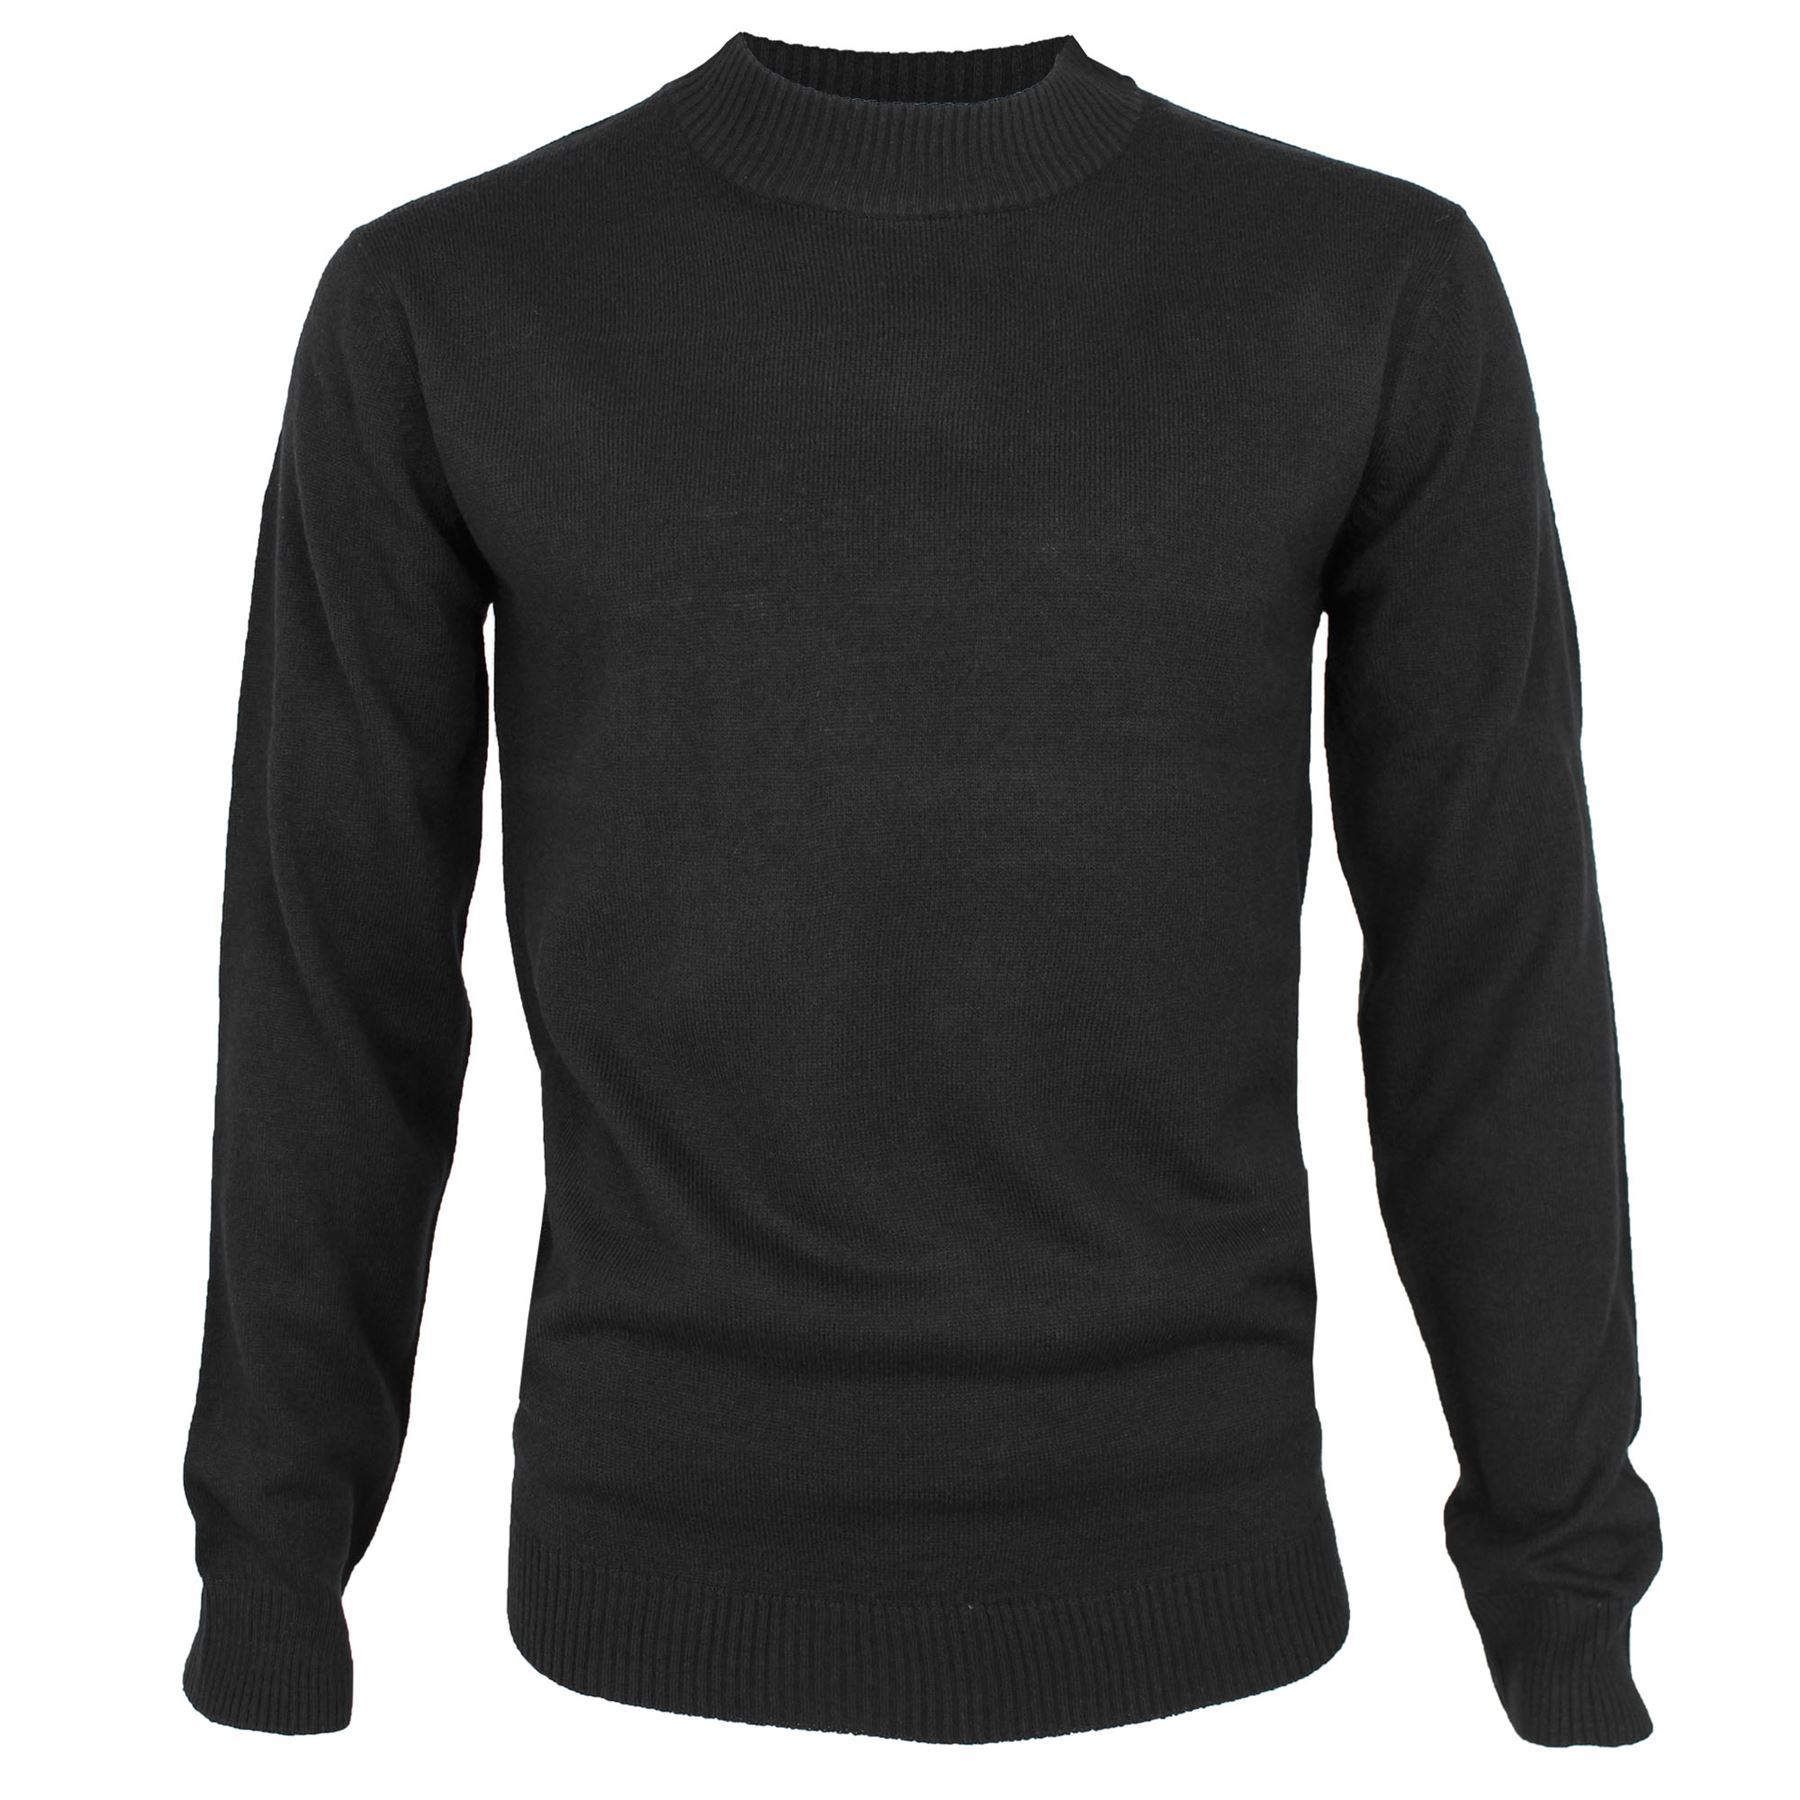 Discover the range of men's turtle and roll neck jumpers with ASOS. From a variety of styles and colours, in merino wool and lambs wool. Shop now at ASOS.